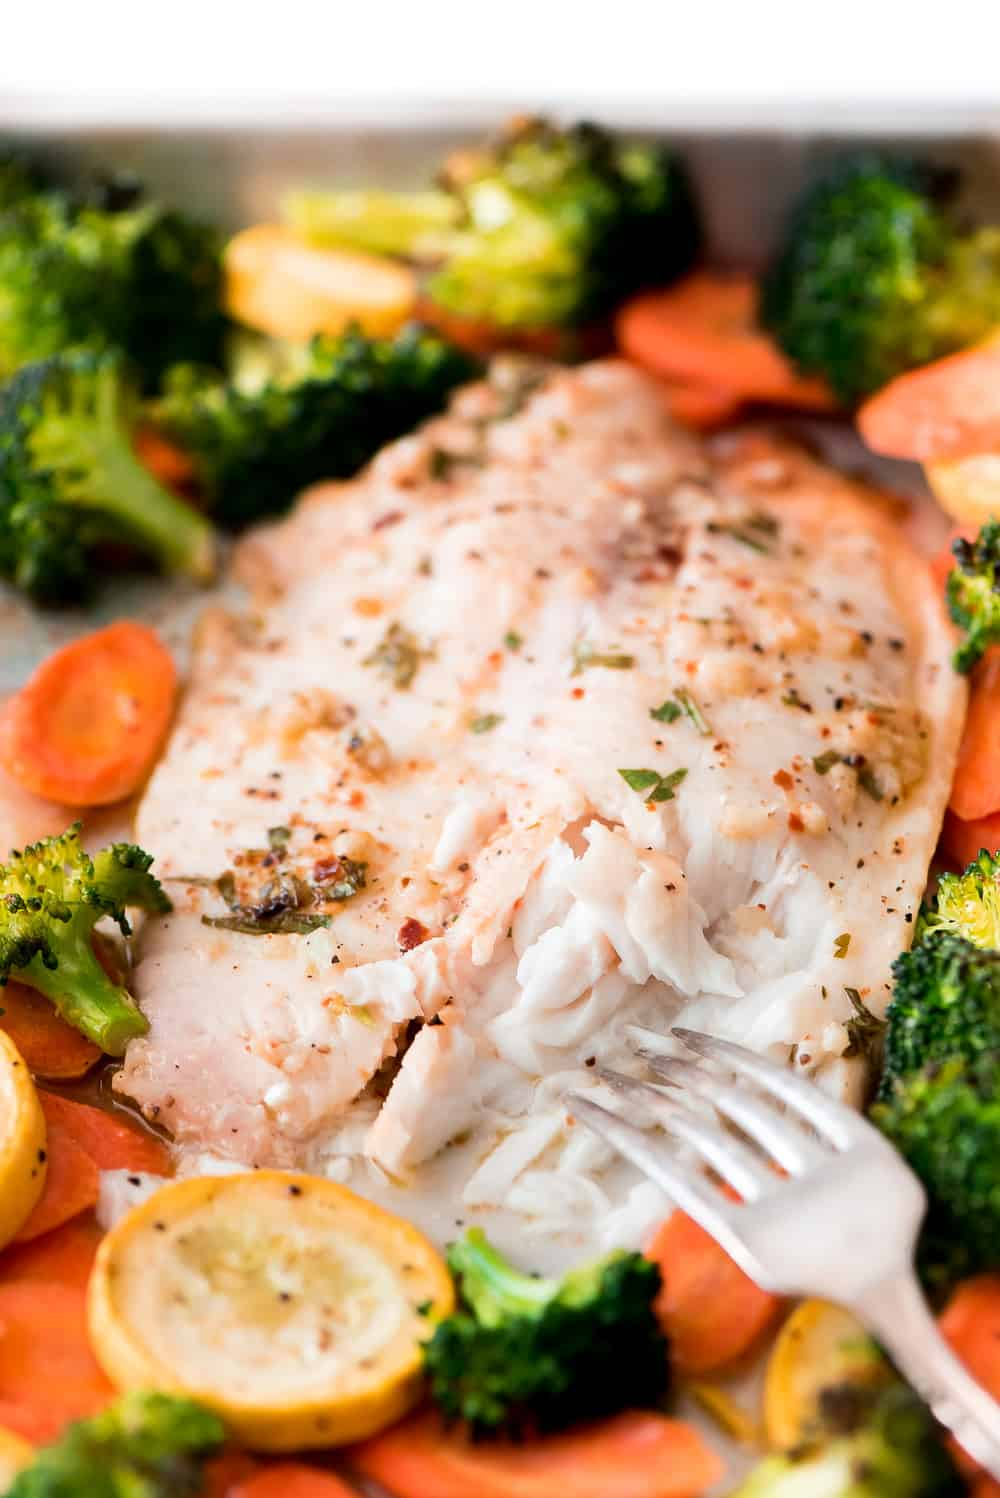 This Baked Tilapia and Roasted Veggies is a low calorie and high protein dish that comes together in less than 25 minutes!